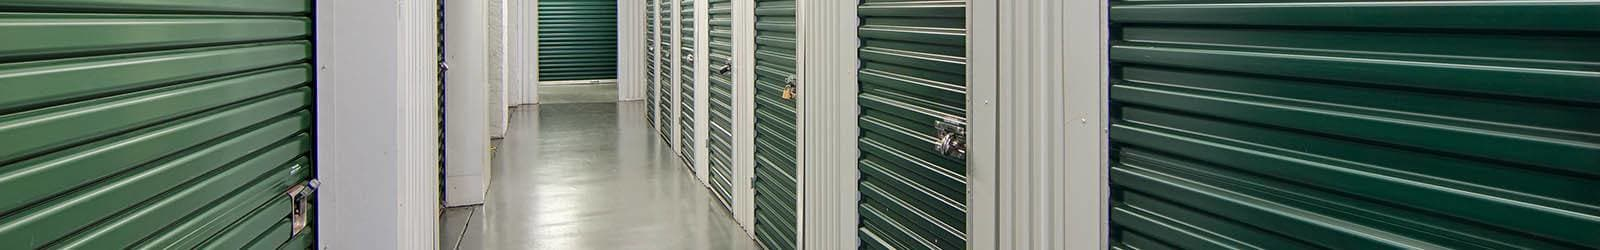 Self storage unit sizes and prices offered in Houston